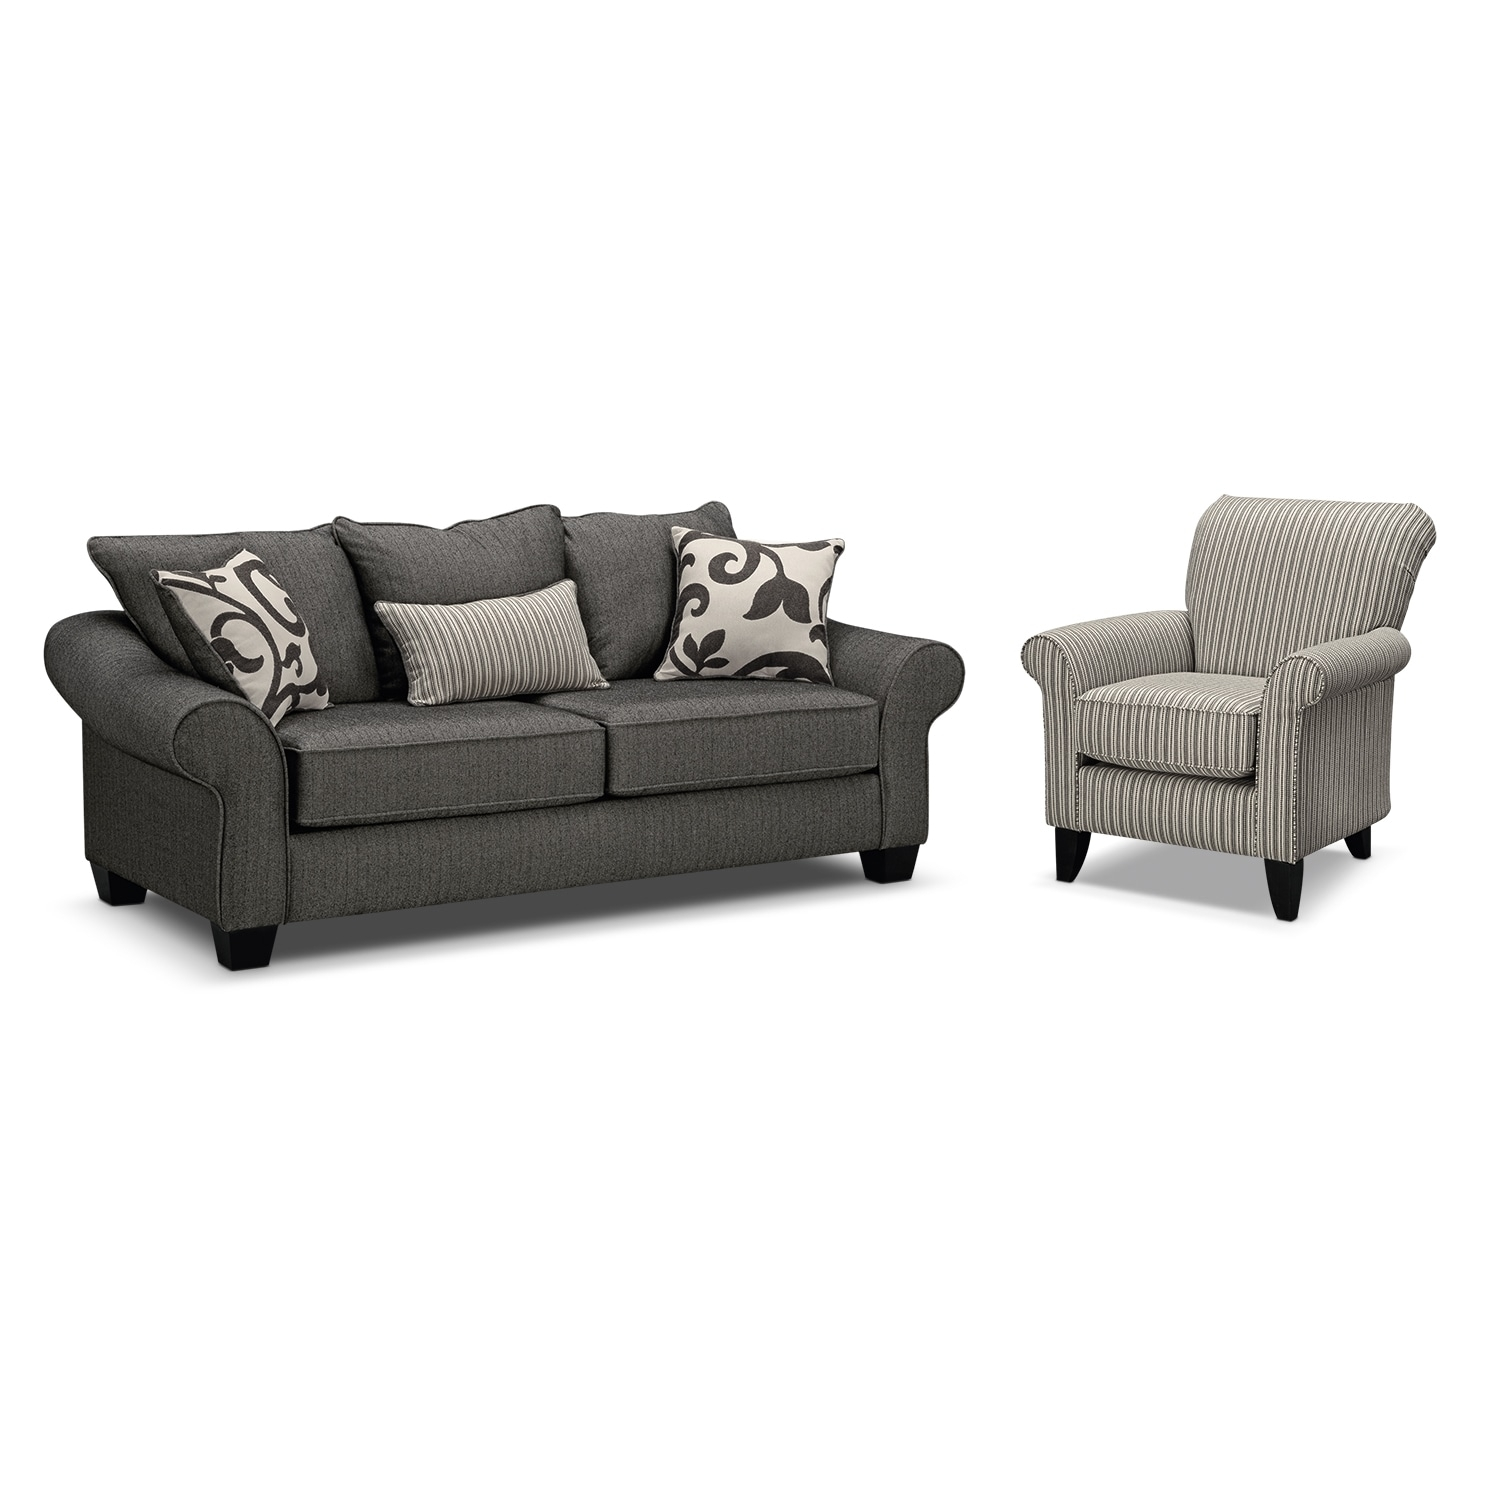 Colette Sofa And Accent Chair Set – Gray | Value City Furniture And Regarding Sofa And Accent Chair Sets (View 5 of 10)